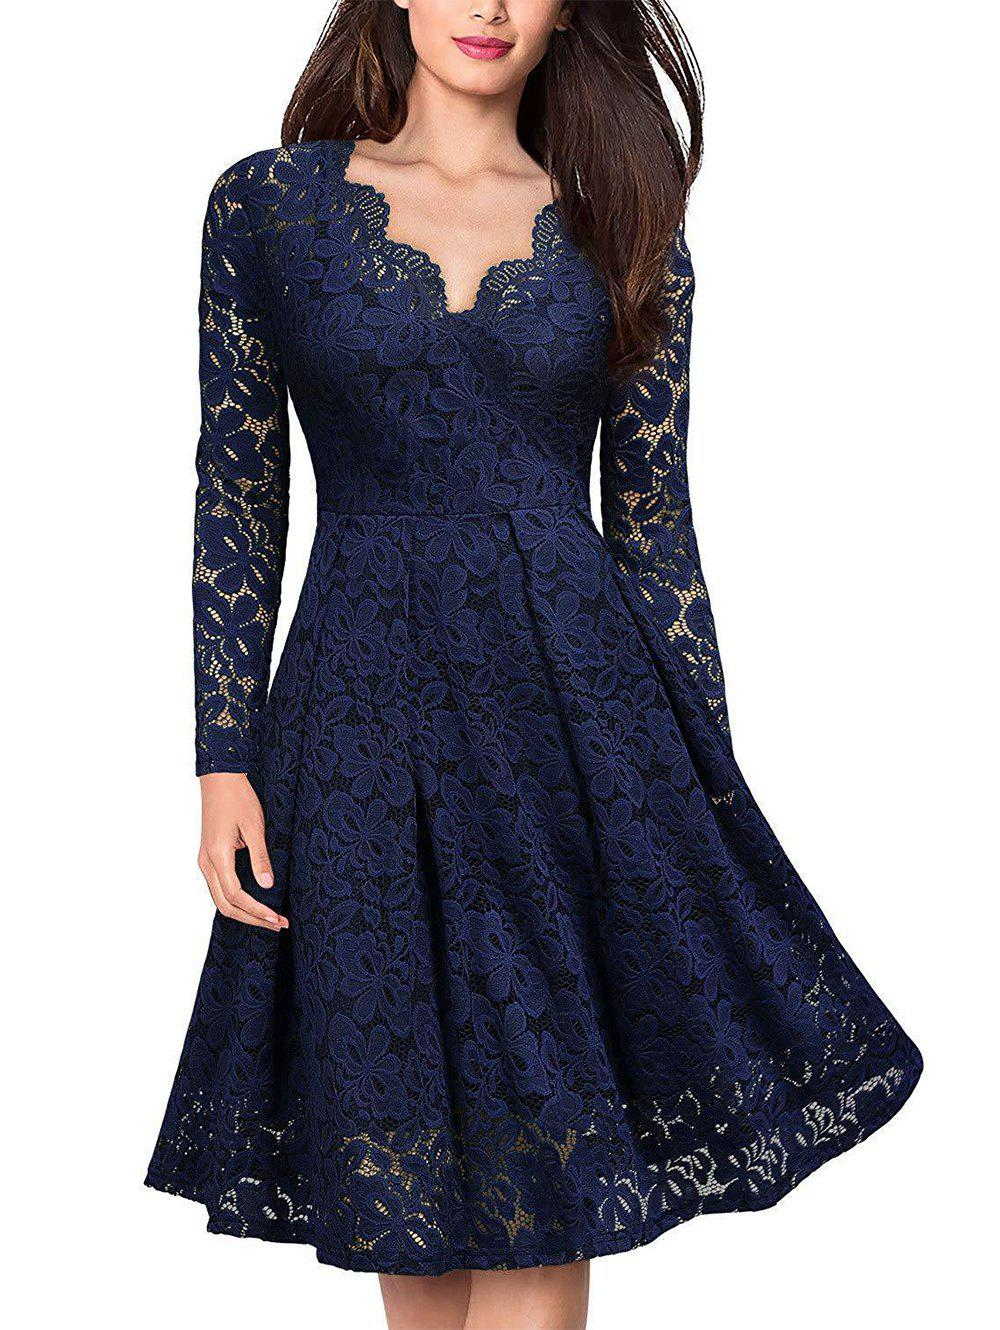 Fancy Lace V Neck Long Sleeves Swing Dress